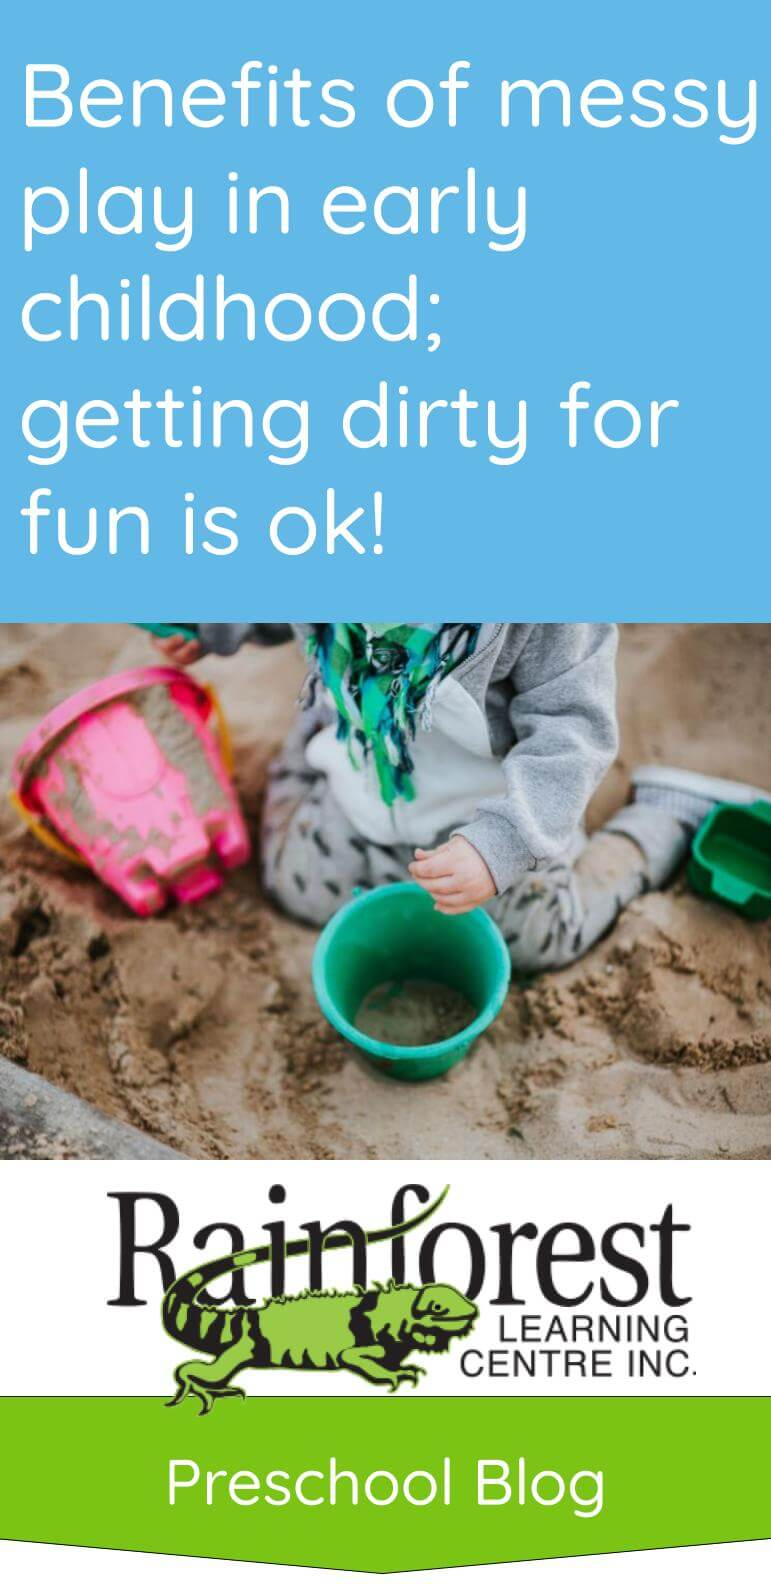 Benefits of messy play in early childhood - article Pinterest image